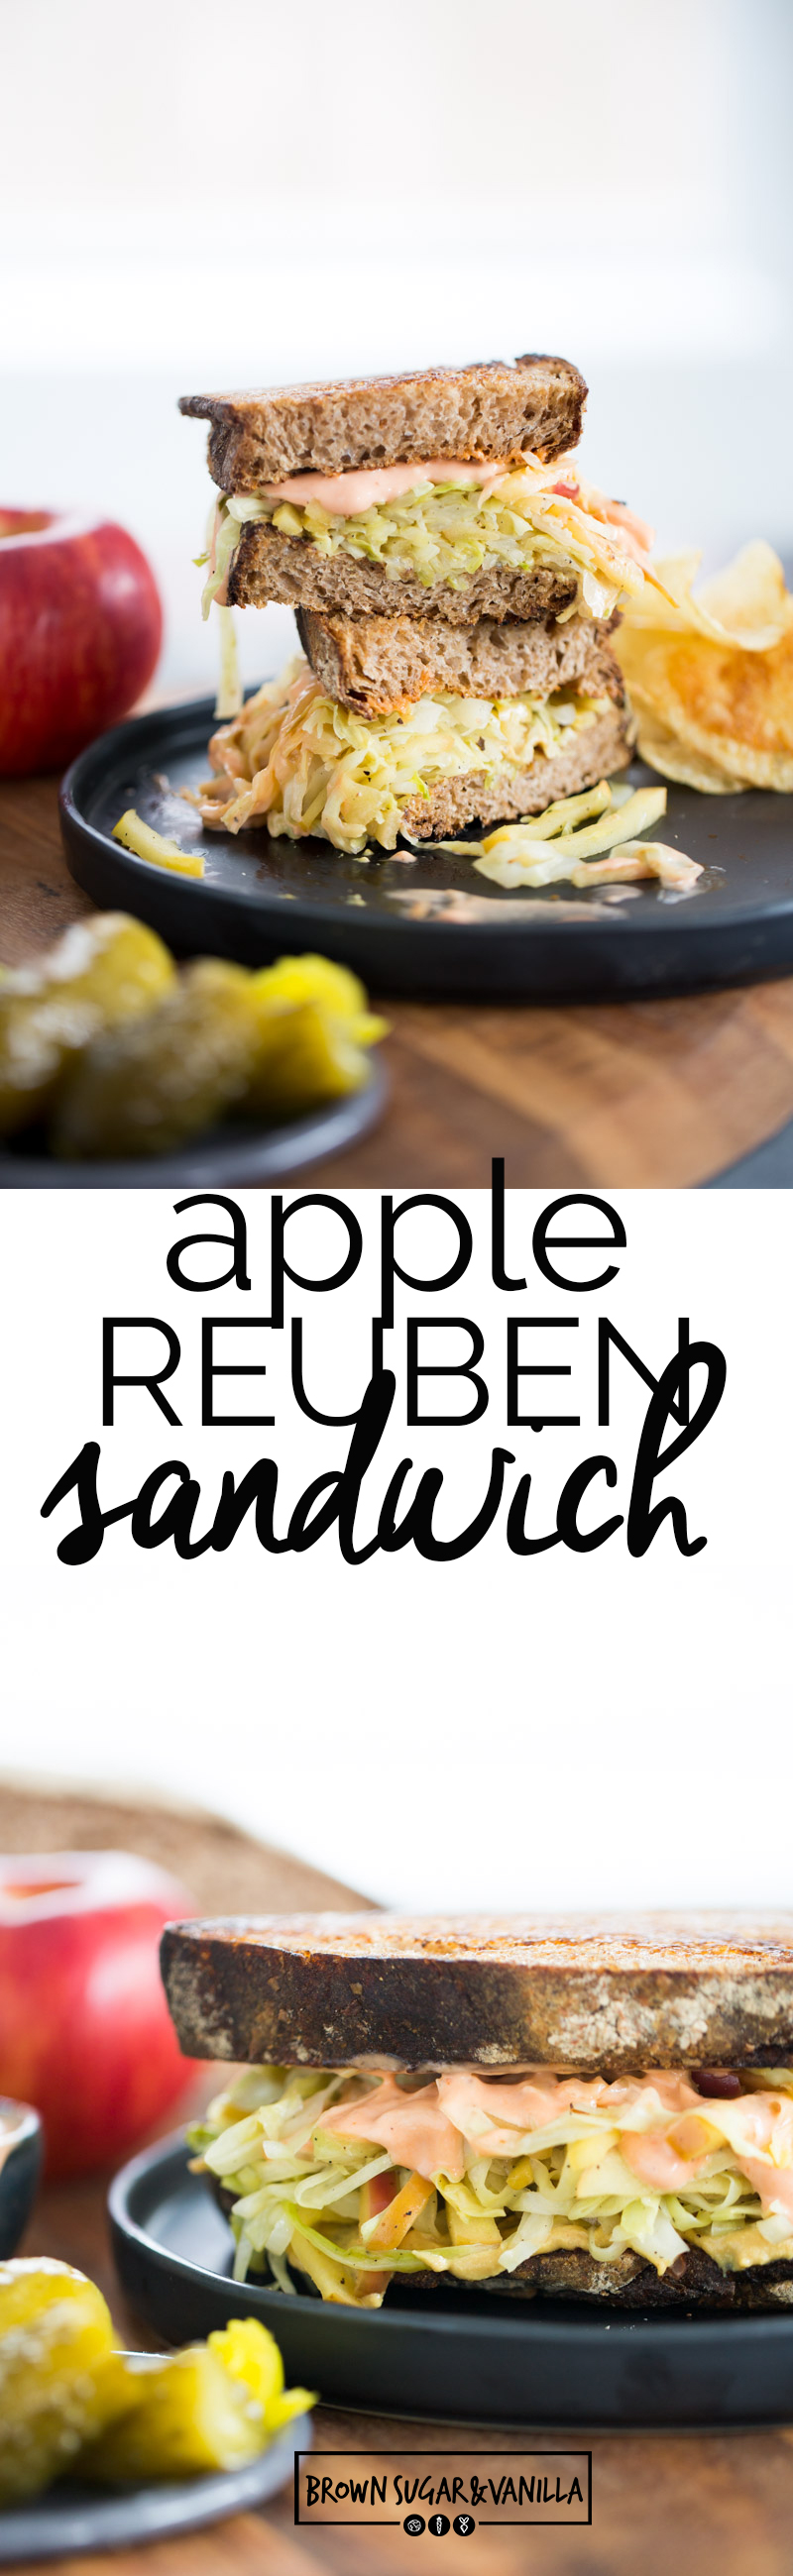 This Apple Reuben Sandwich is vegan and the perfect healthier alternative to a classic Reuben Sandwich. It's super easy to make, delicious, and very nutritious.